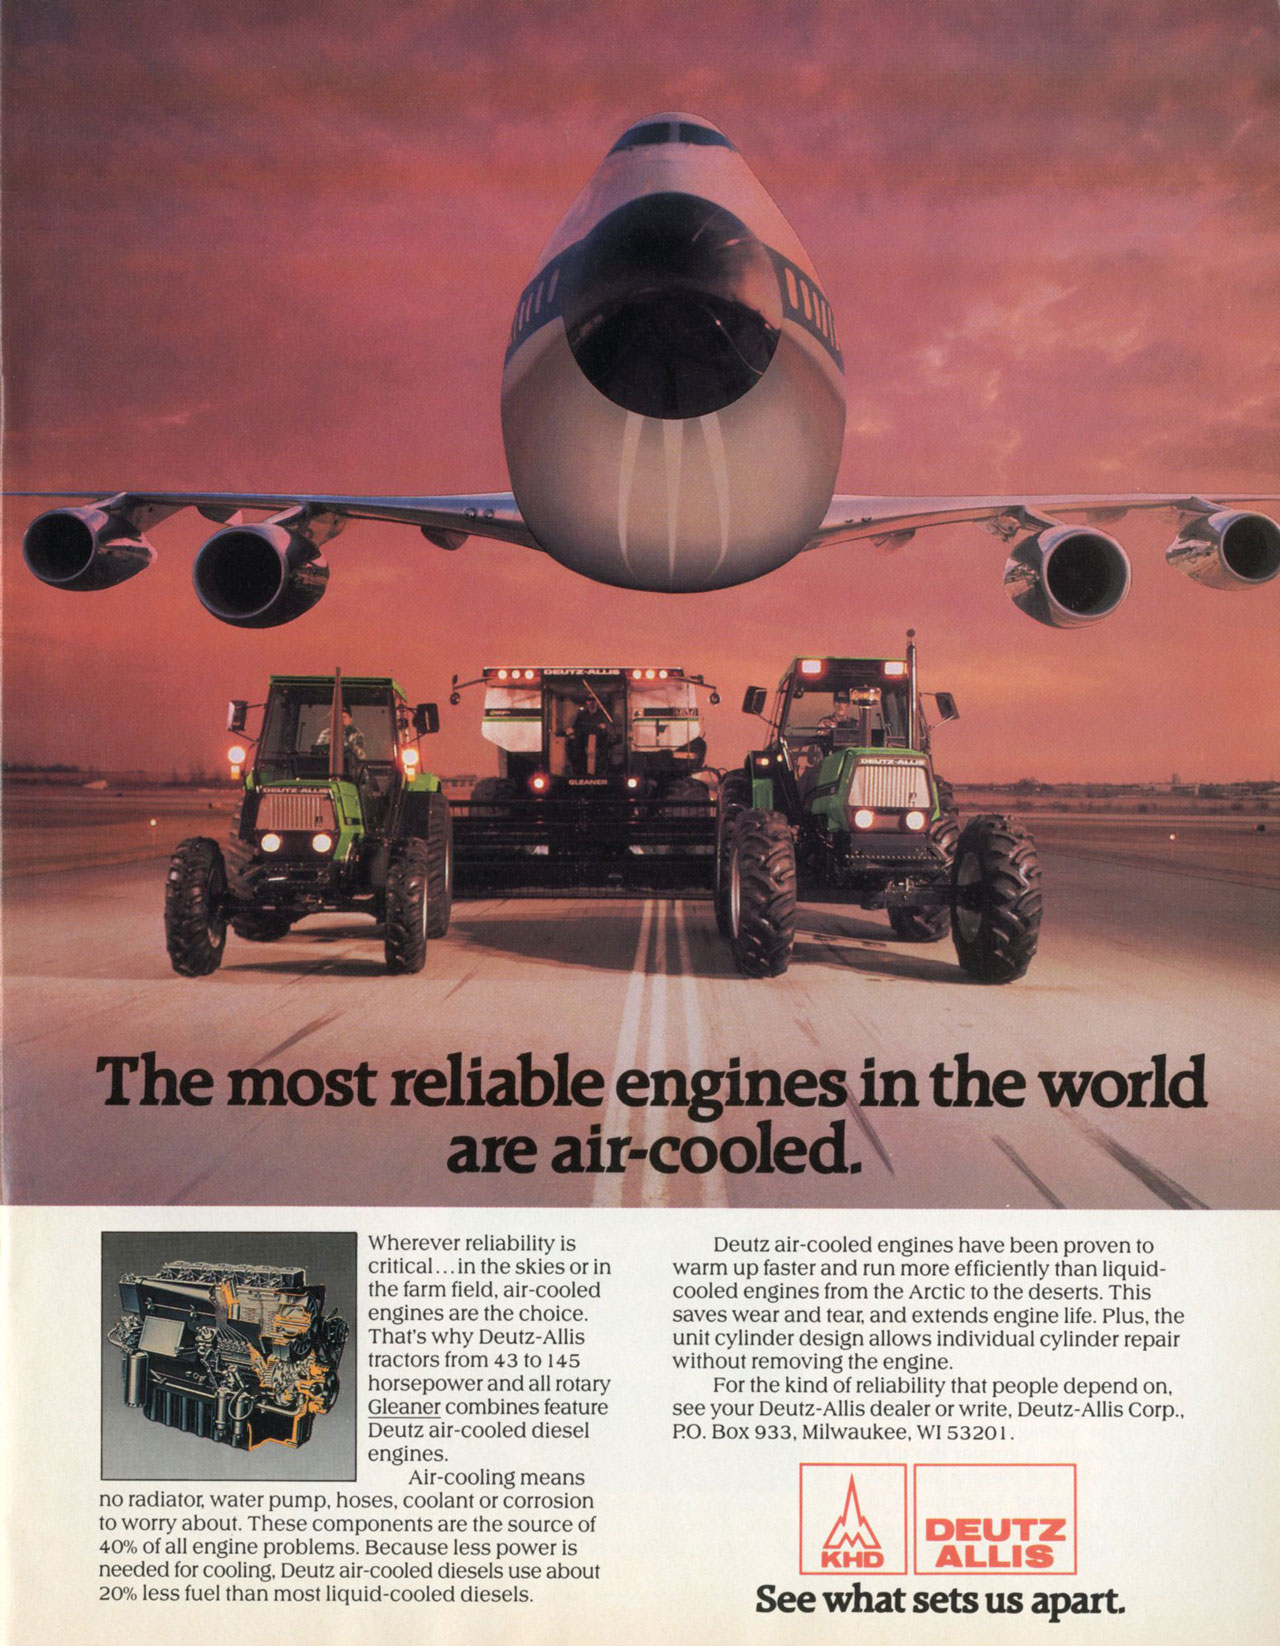 The most reliable engines in the world are air-cooled. Wherever reliability is critical...in the skies or in the farm field, air-cooled engines are the choice. That's why Deutz-Allis tractors from 43 to 145 horsepower and all rotary Gleaner combines feature Deutz air-cooled diesel engines. Air-cooling means no radiator, water pump, hoses, coolant or corrosion to worry about. These components are the source of 40% of all engine problems. Because less power is needed for cooling, Deutz air-cooled diesels use about 20% less fuel than most liquid-cooled diesels. Deutz air-cooled engines have been proven to warm up faster and run more efficiently than liquid-cooled engines from the Arctic to the deserts. This saves wear and tear, and extends engine life. Plus, the unit cylinder design allows individual cylinder repair without removing the engine. For the kind of reliability that people depend on, see your Deutz-Allis dealer or write, Deutz-Allis Corp., P.O. Box 933, Milwaukee, WI 53201. Deutz-Allis. See what sets us apart.